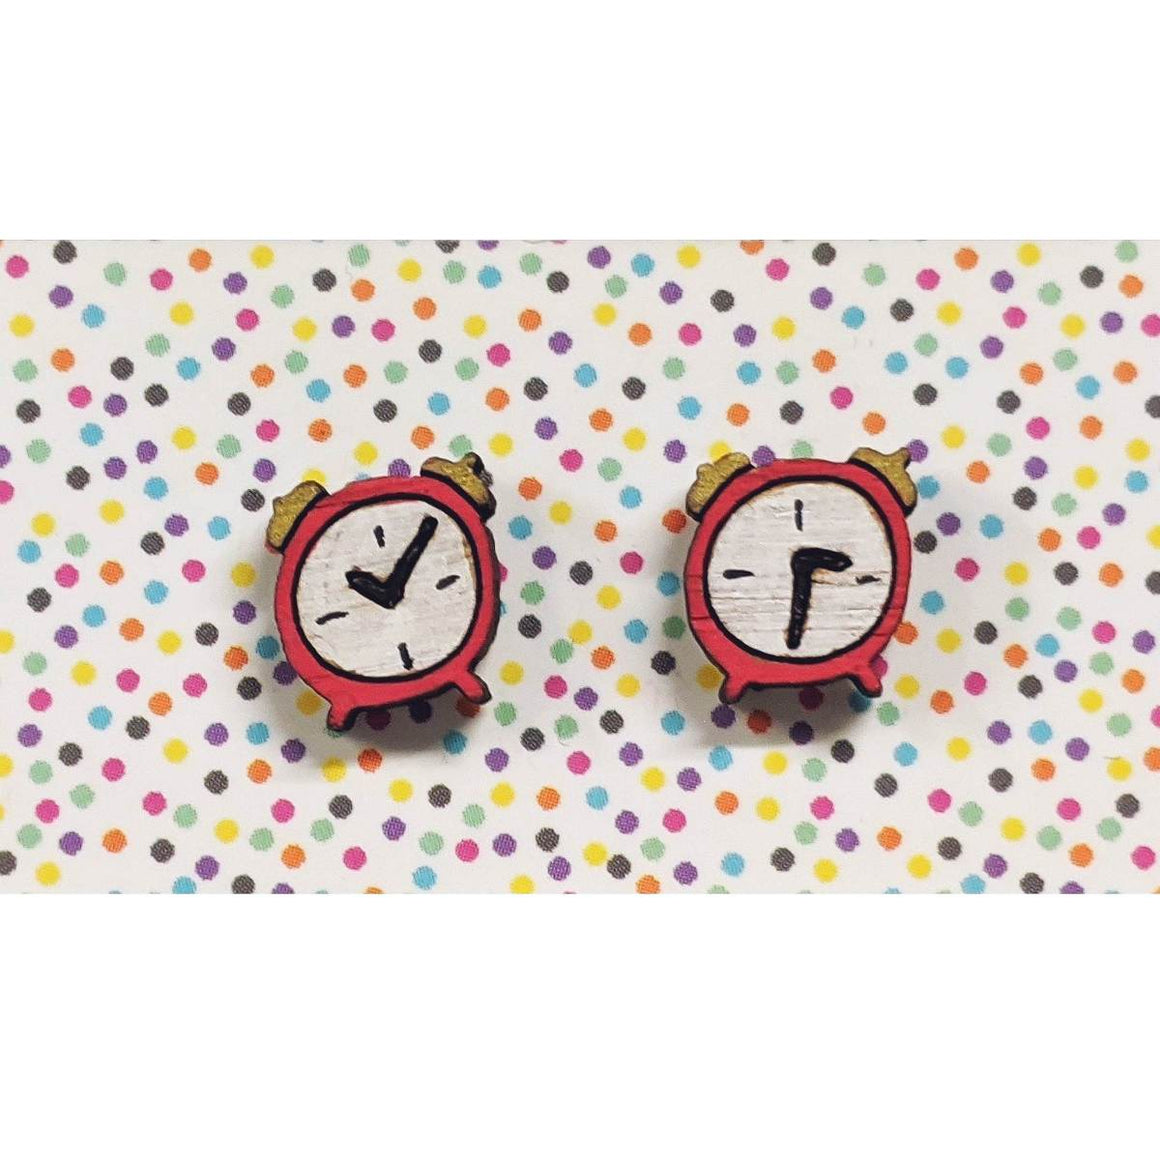 A pair of intricately hand coloured studs depicting two retro red analog alarm clocks with vintage style bells on top. They show different times.